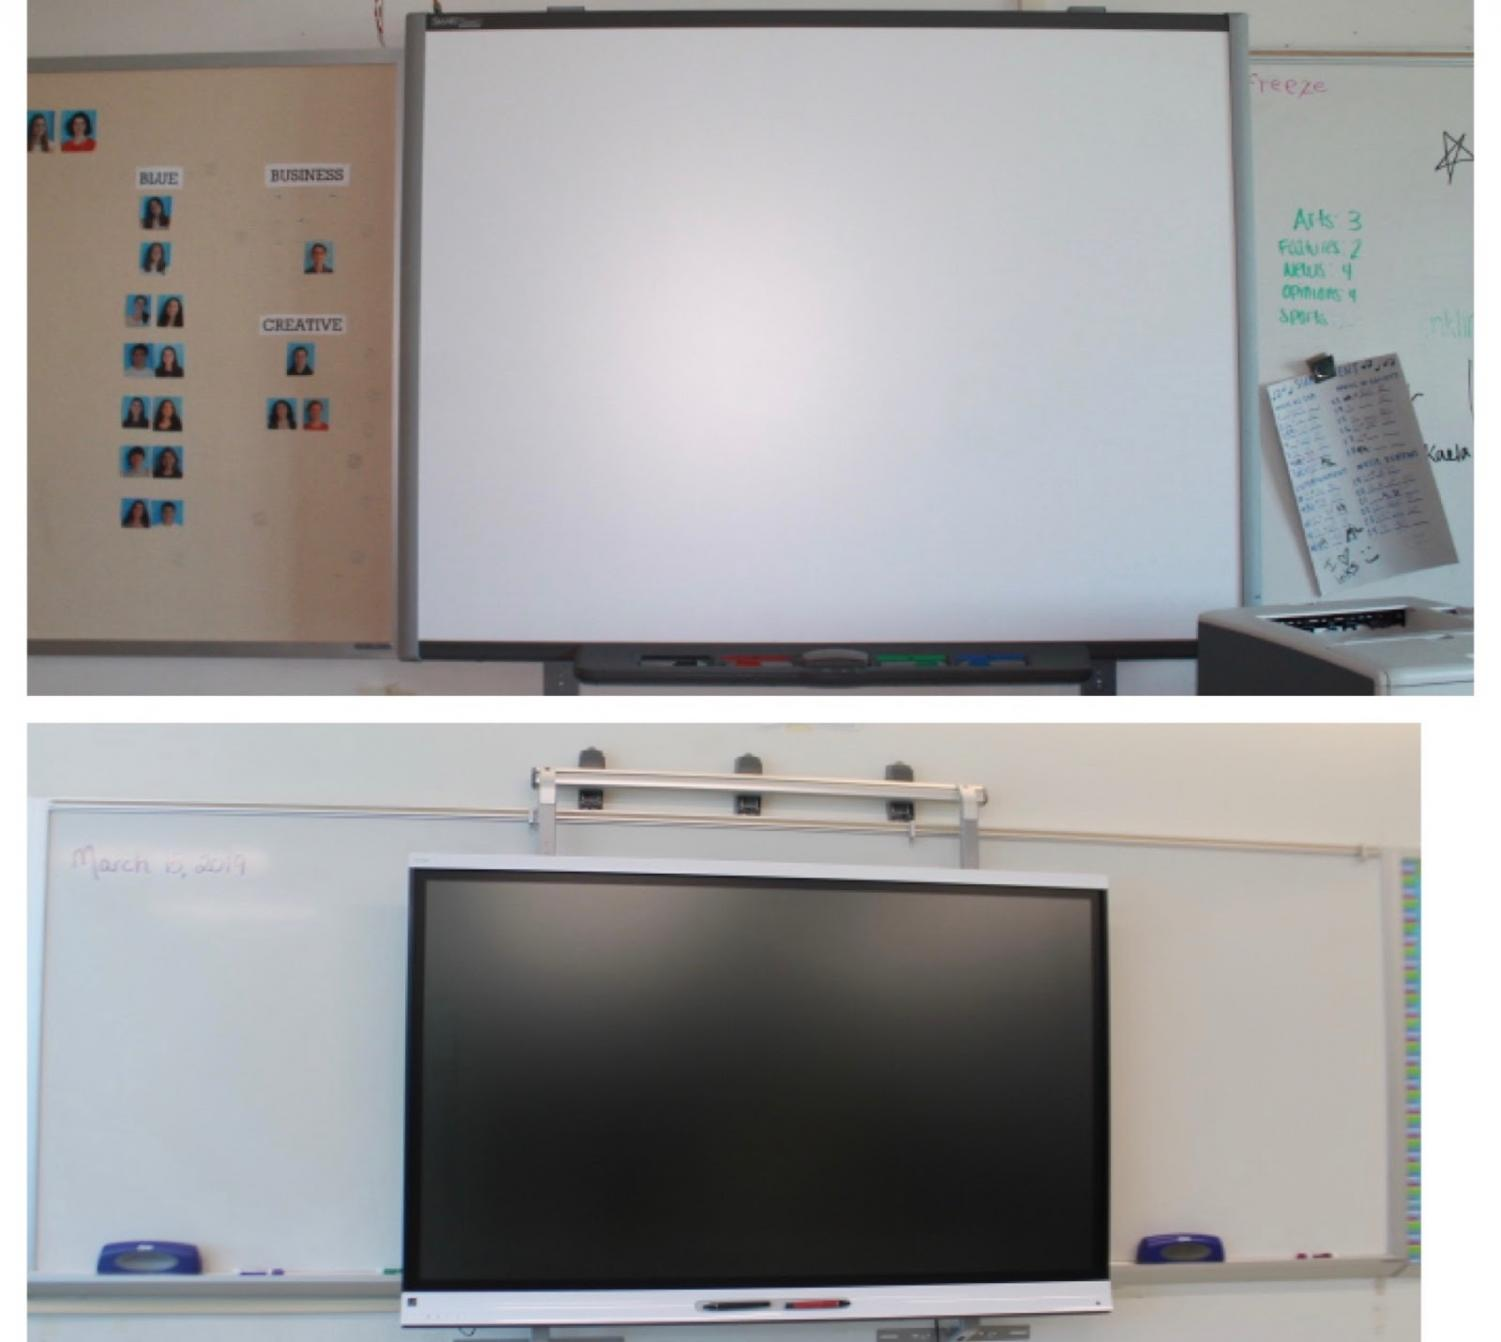 These are two versions of SmartBoards at Staples High School, some being newer and having a higher technology capability. The older SmartBoards are notorious for having technology difficulties and breaking more easily.